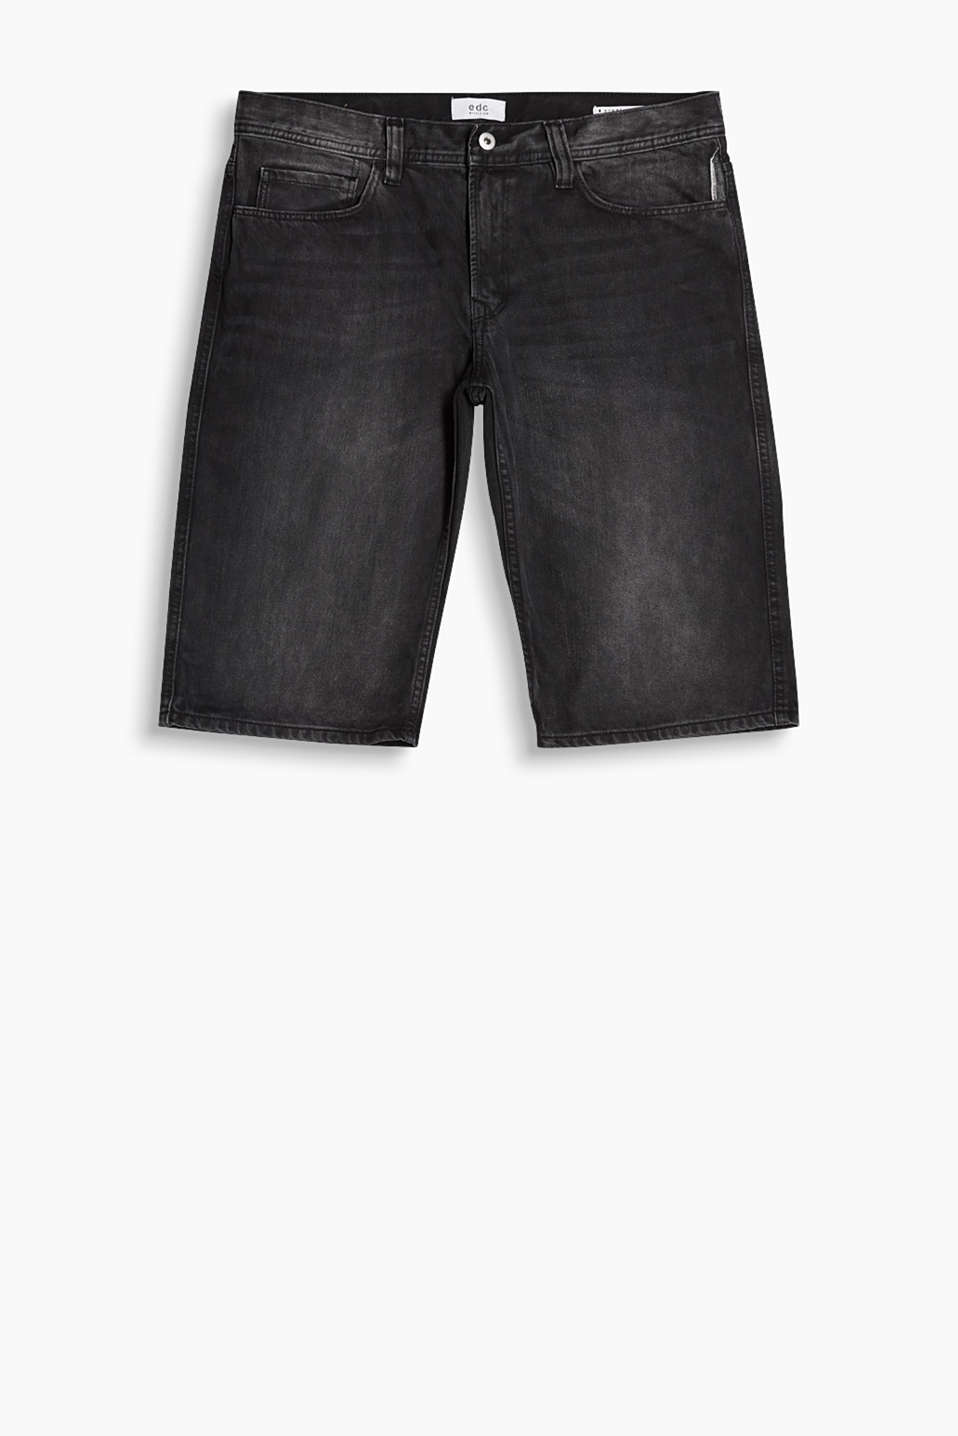 With a high-quality, trendy garment wash: Bermudas in a five-pocket style, in cotton denim